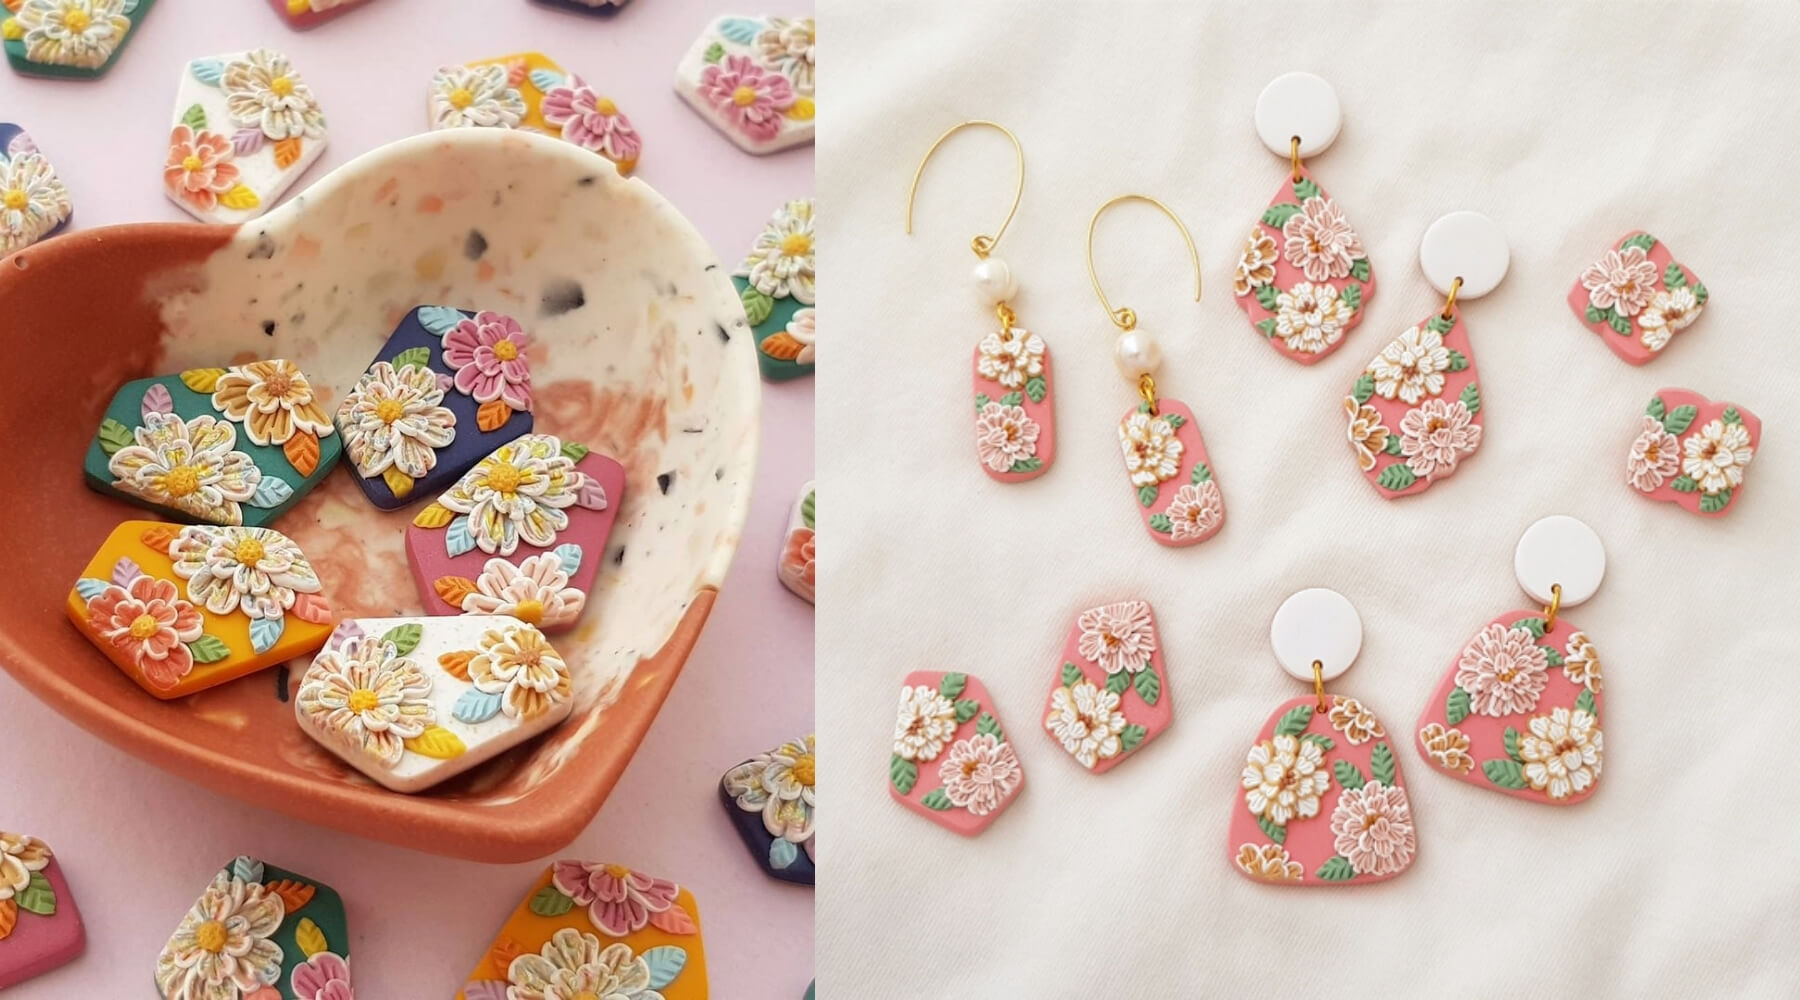 bloomthis-sapot-lokal-9-local-malaysian-brands-we-love-2021-07-summer-olive-handcrafted-clay-earrings